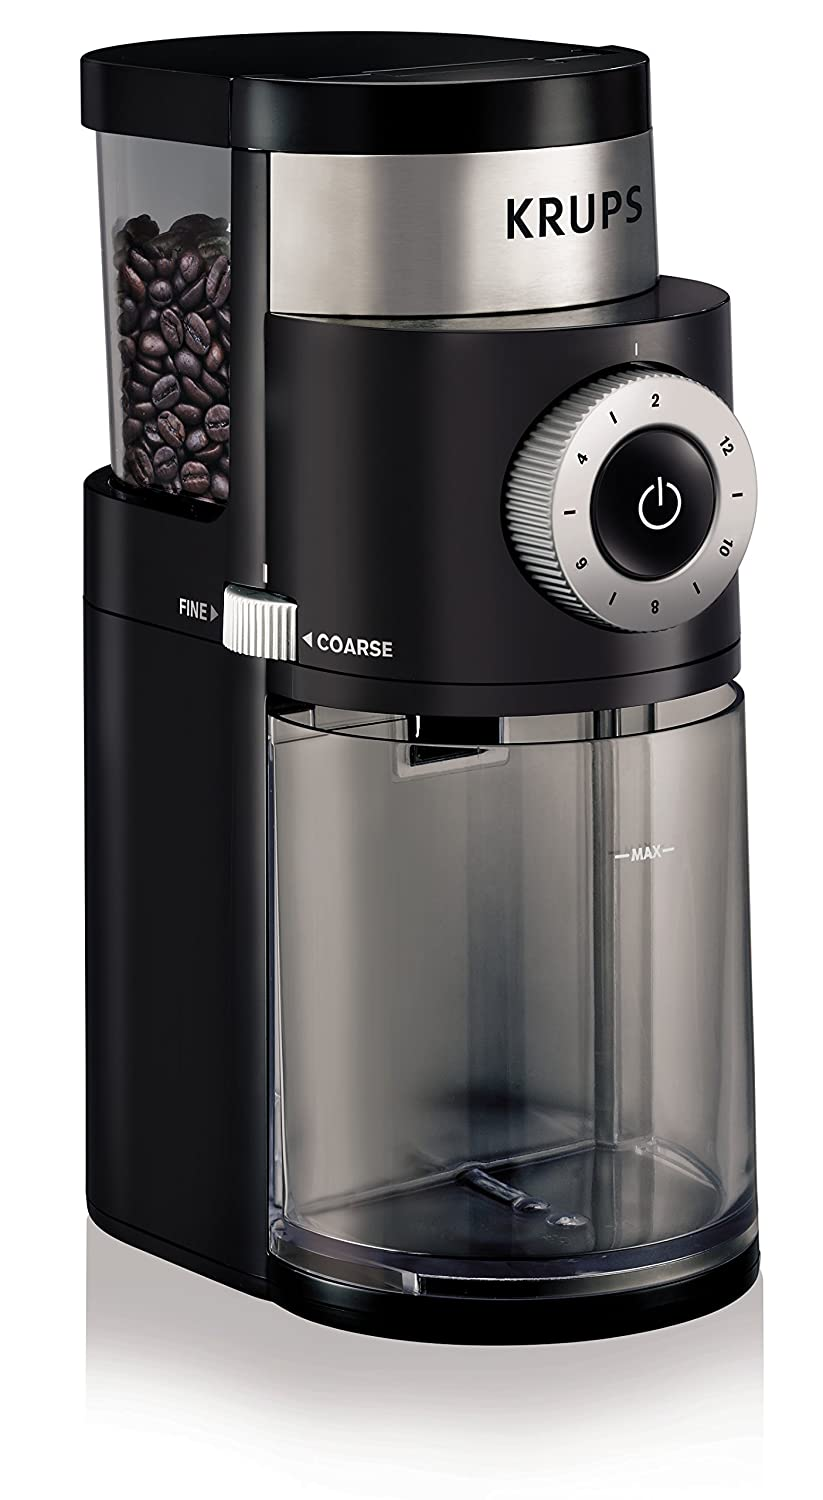 KRUPS GX5000 Burr Coffee Grinder, Electric Coffee Grinder with Grind Size and Cup Selection, 7 Ounce, Black (Renewed)